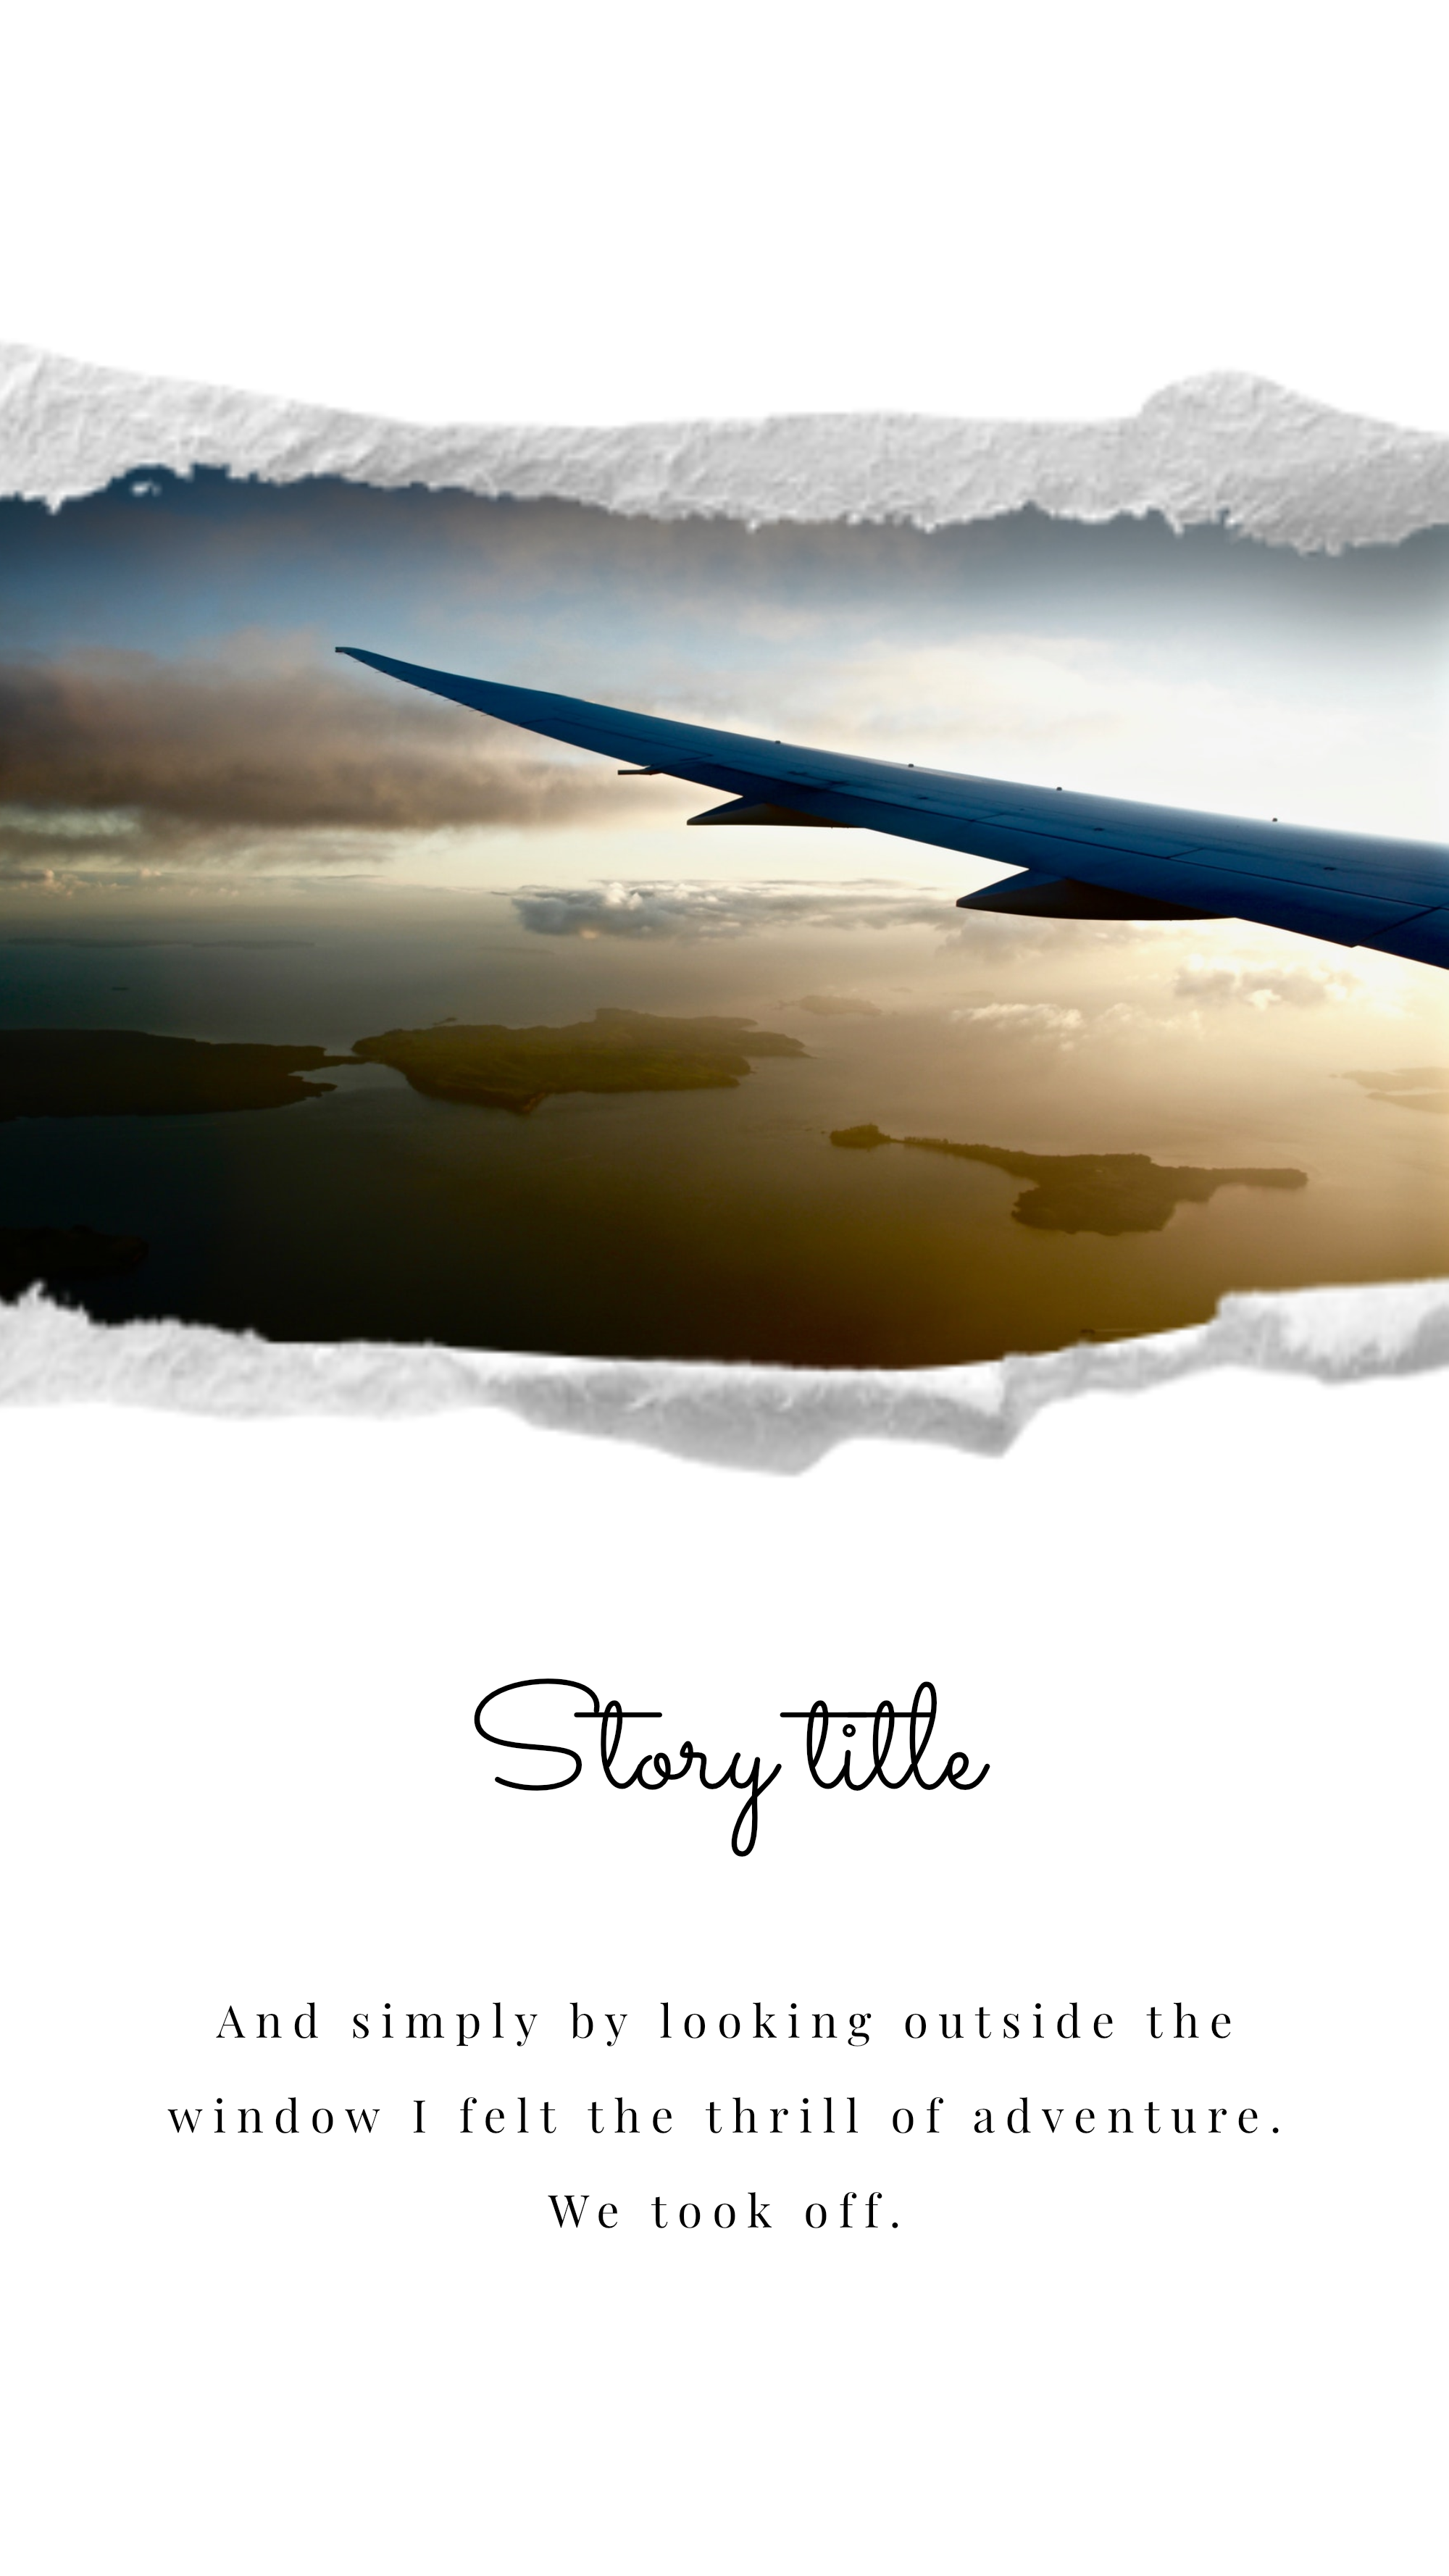 Paper (new) collection - Story title And simply by looking outside the window I felt the thrill of adventure. We took off. Instagram Story Template